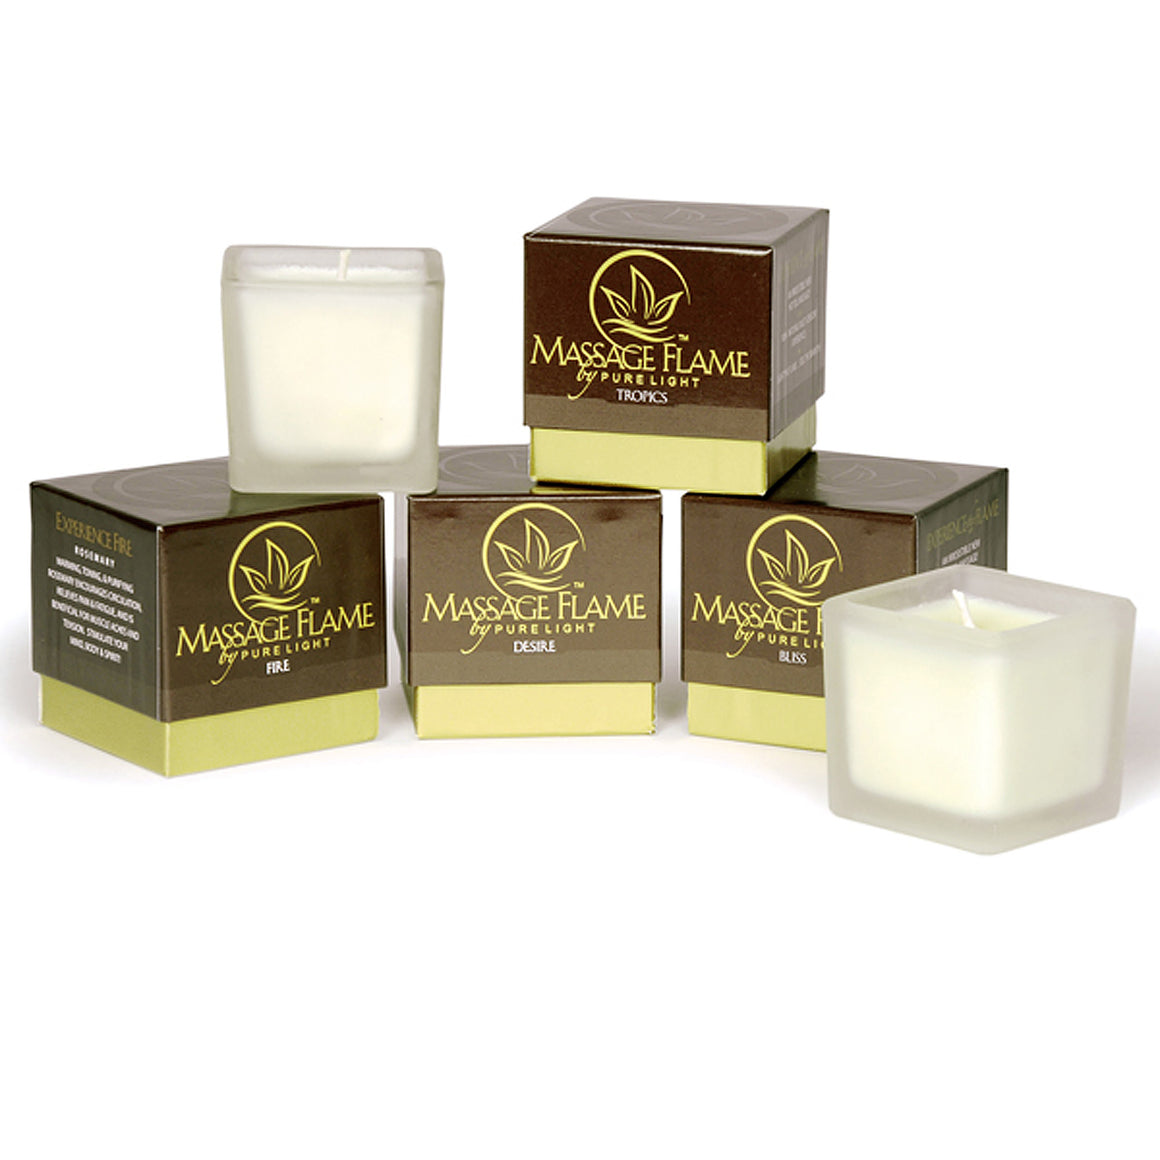 Massage Flame Tranquility Candle